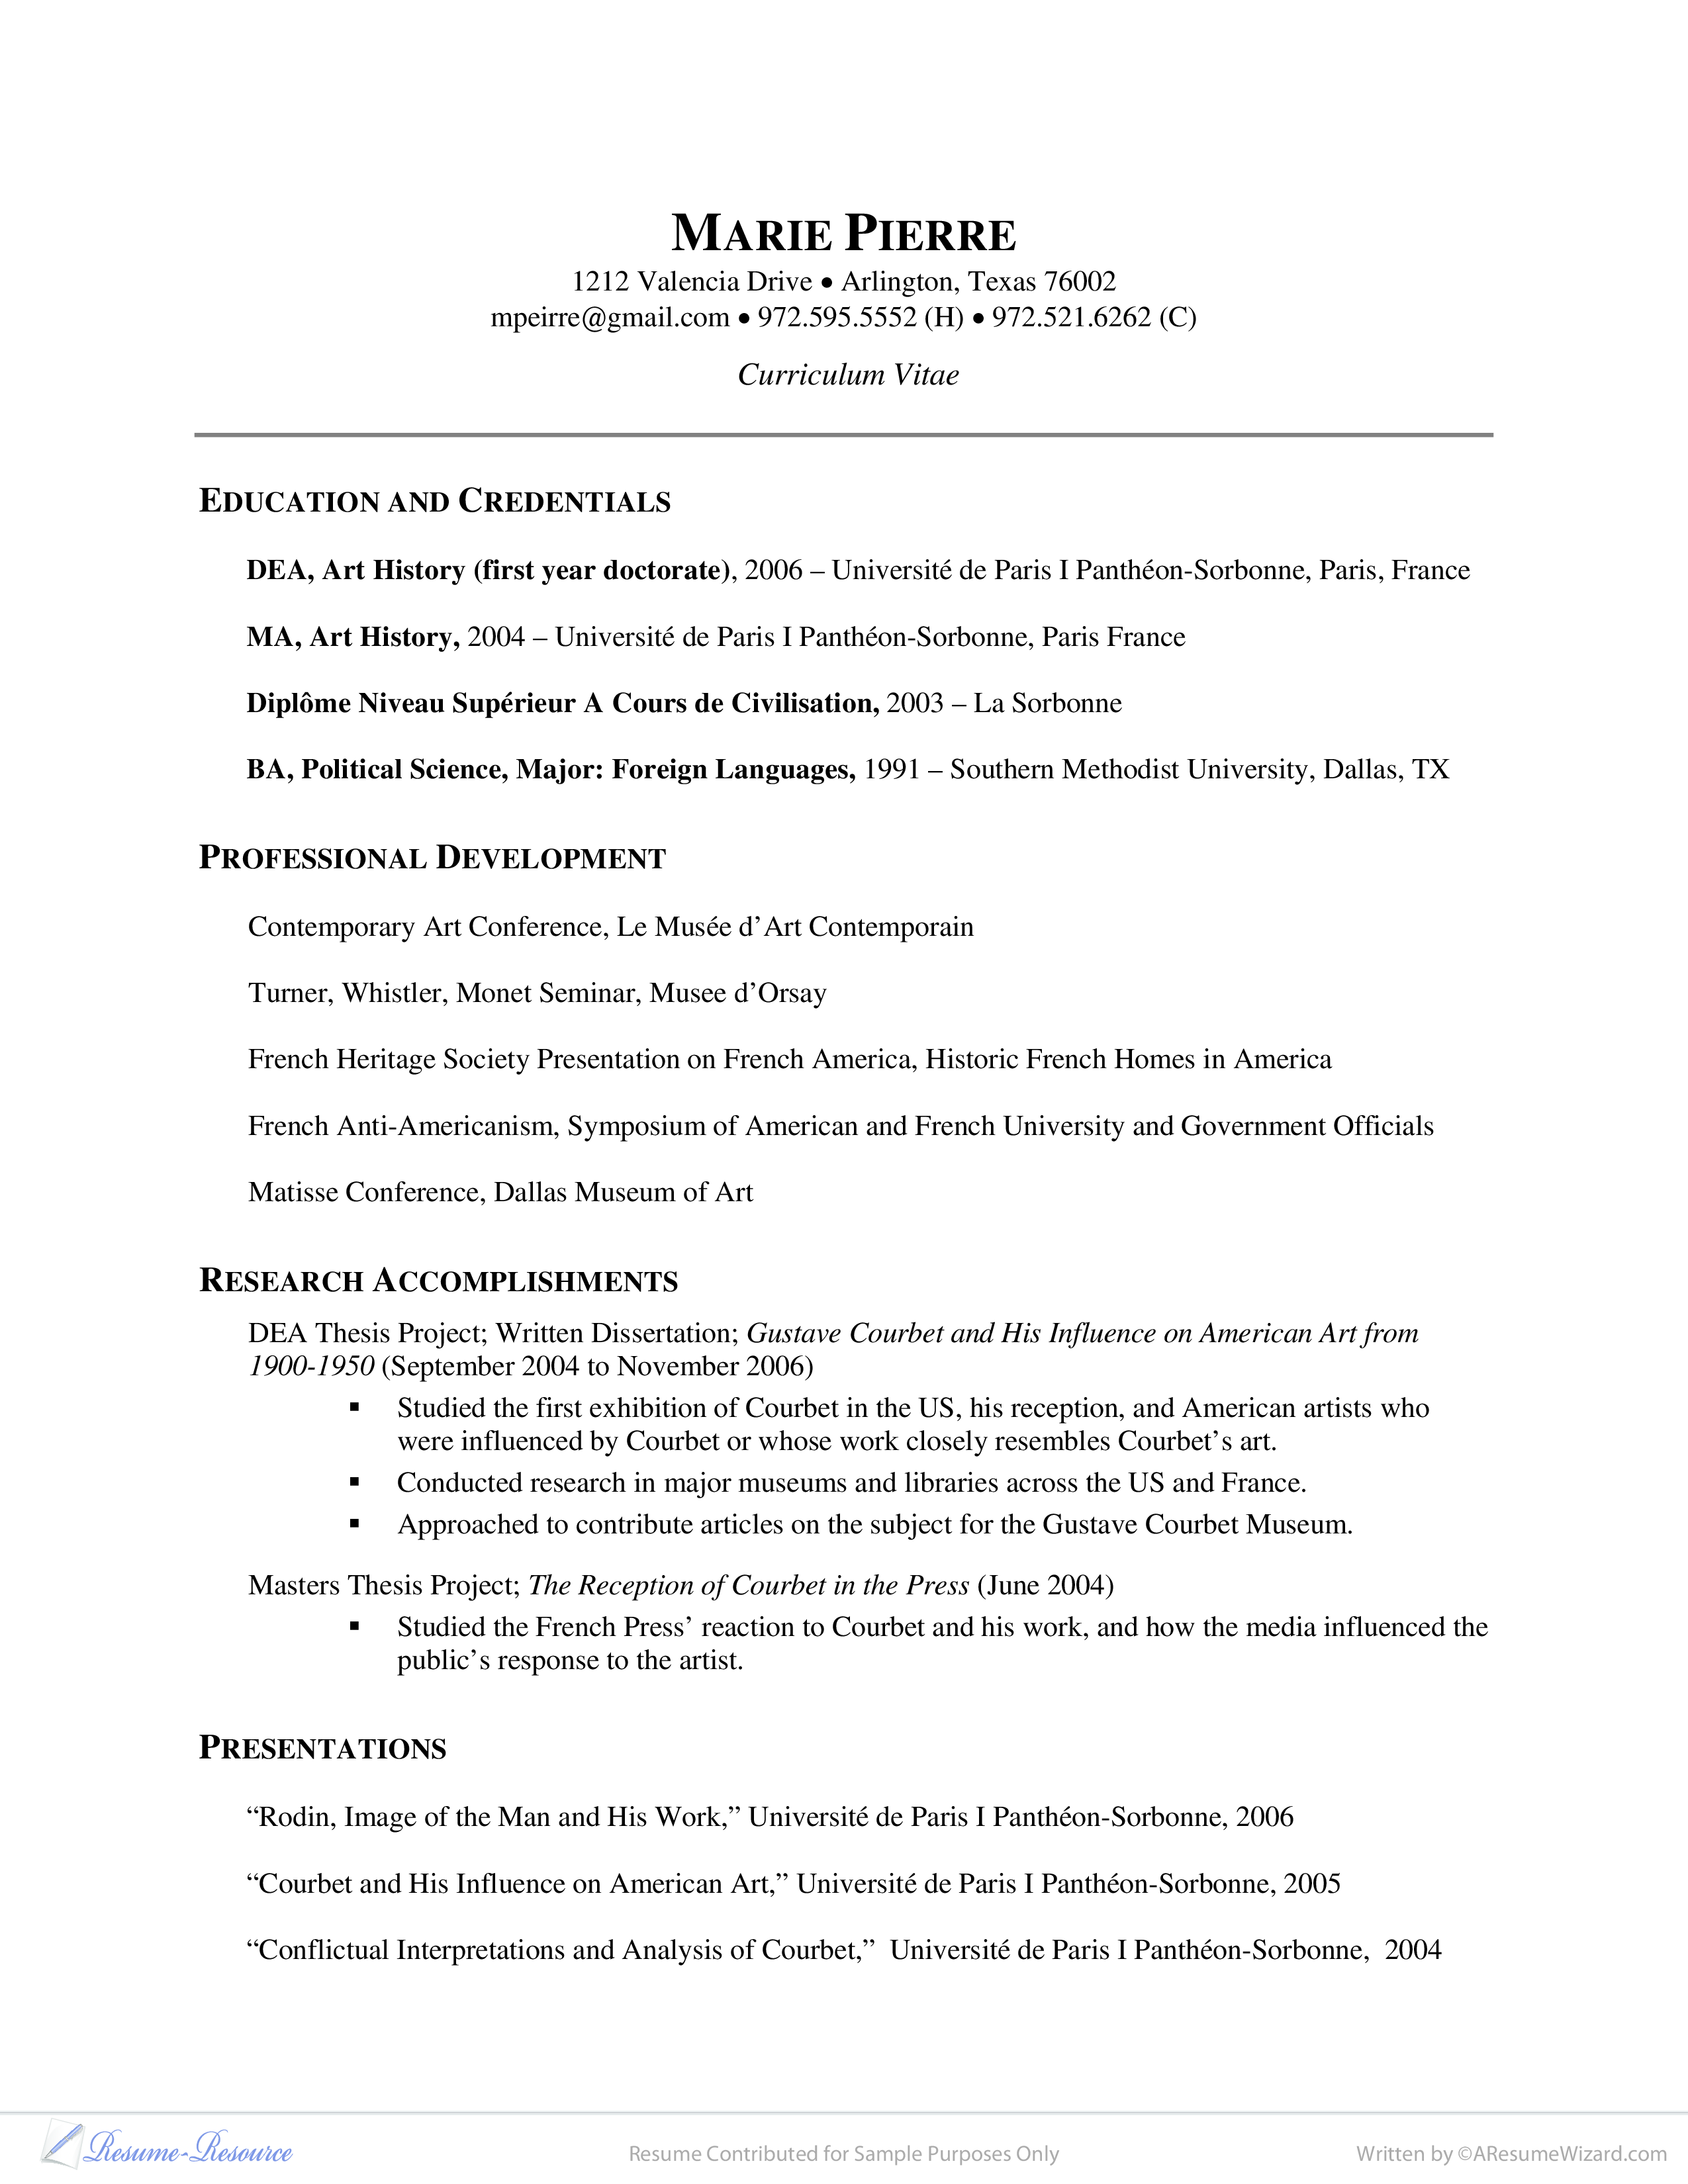 American Resume Sample Curriculum Vitae Example Researcher Art History